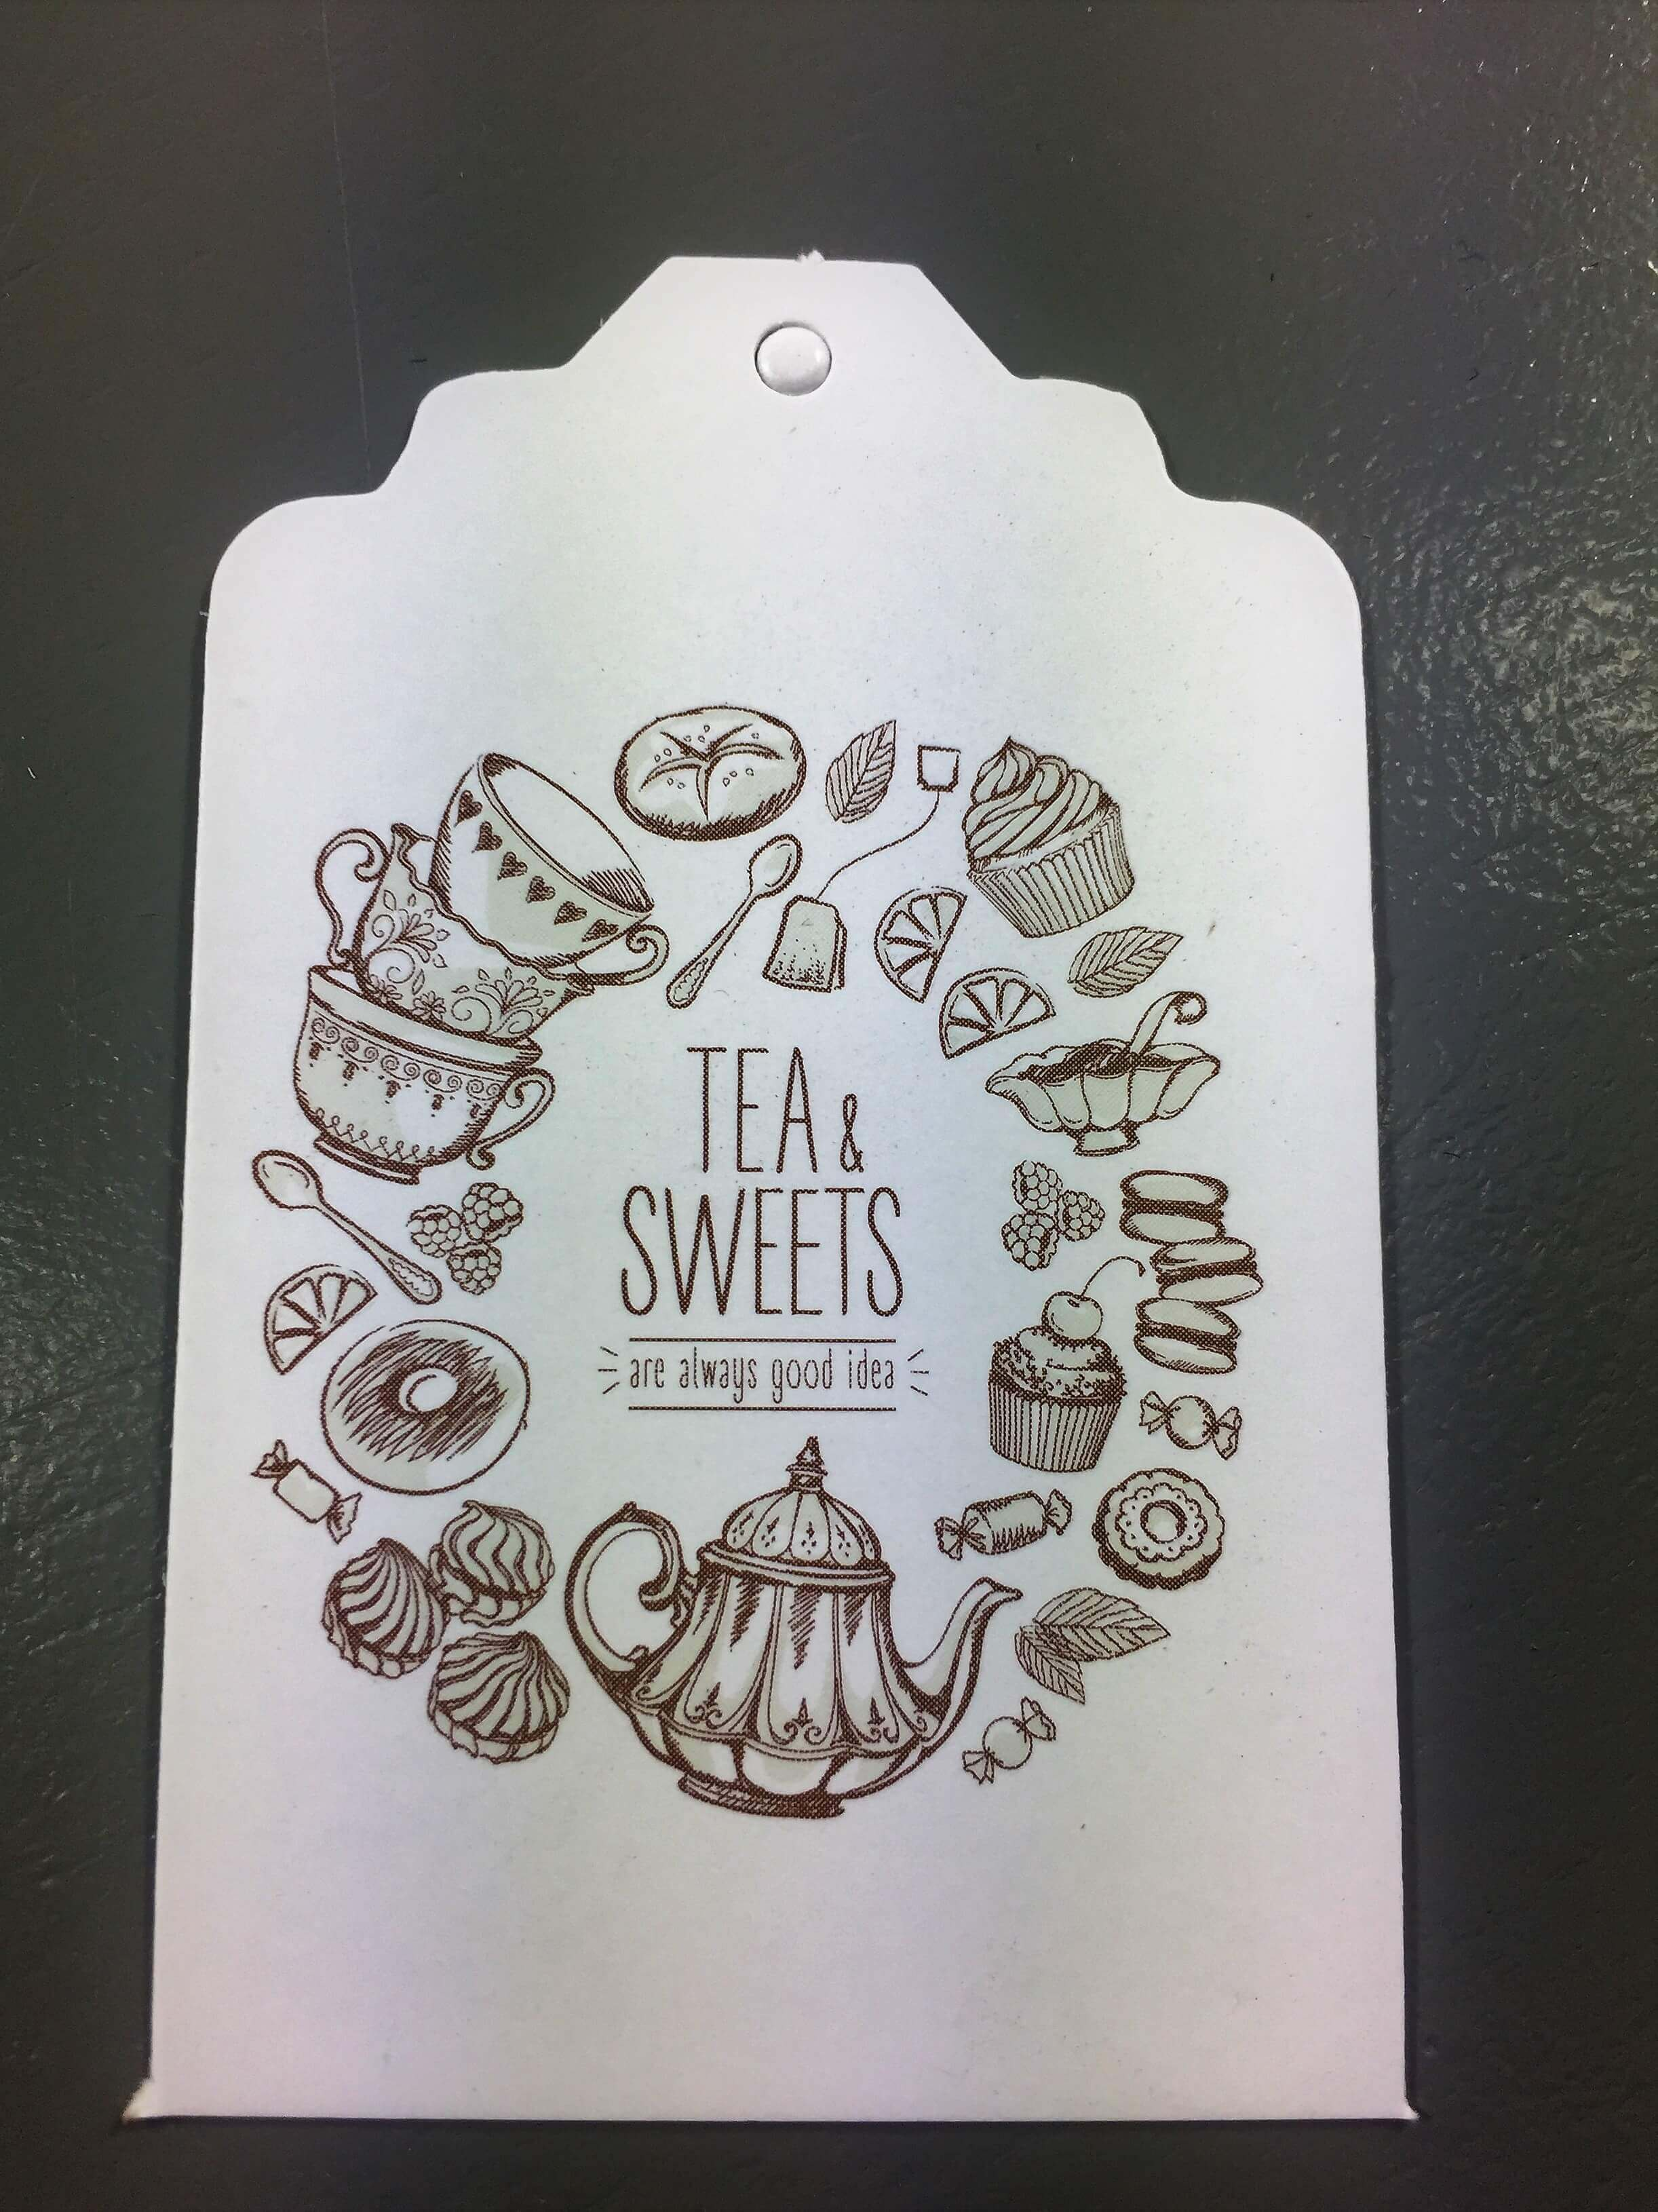 Tea & Sweets - White with Brown Text